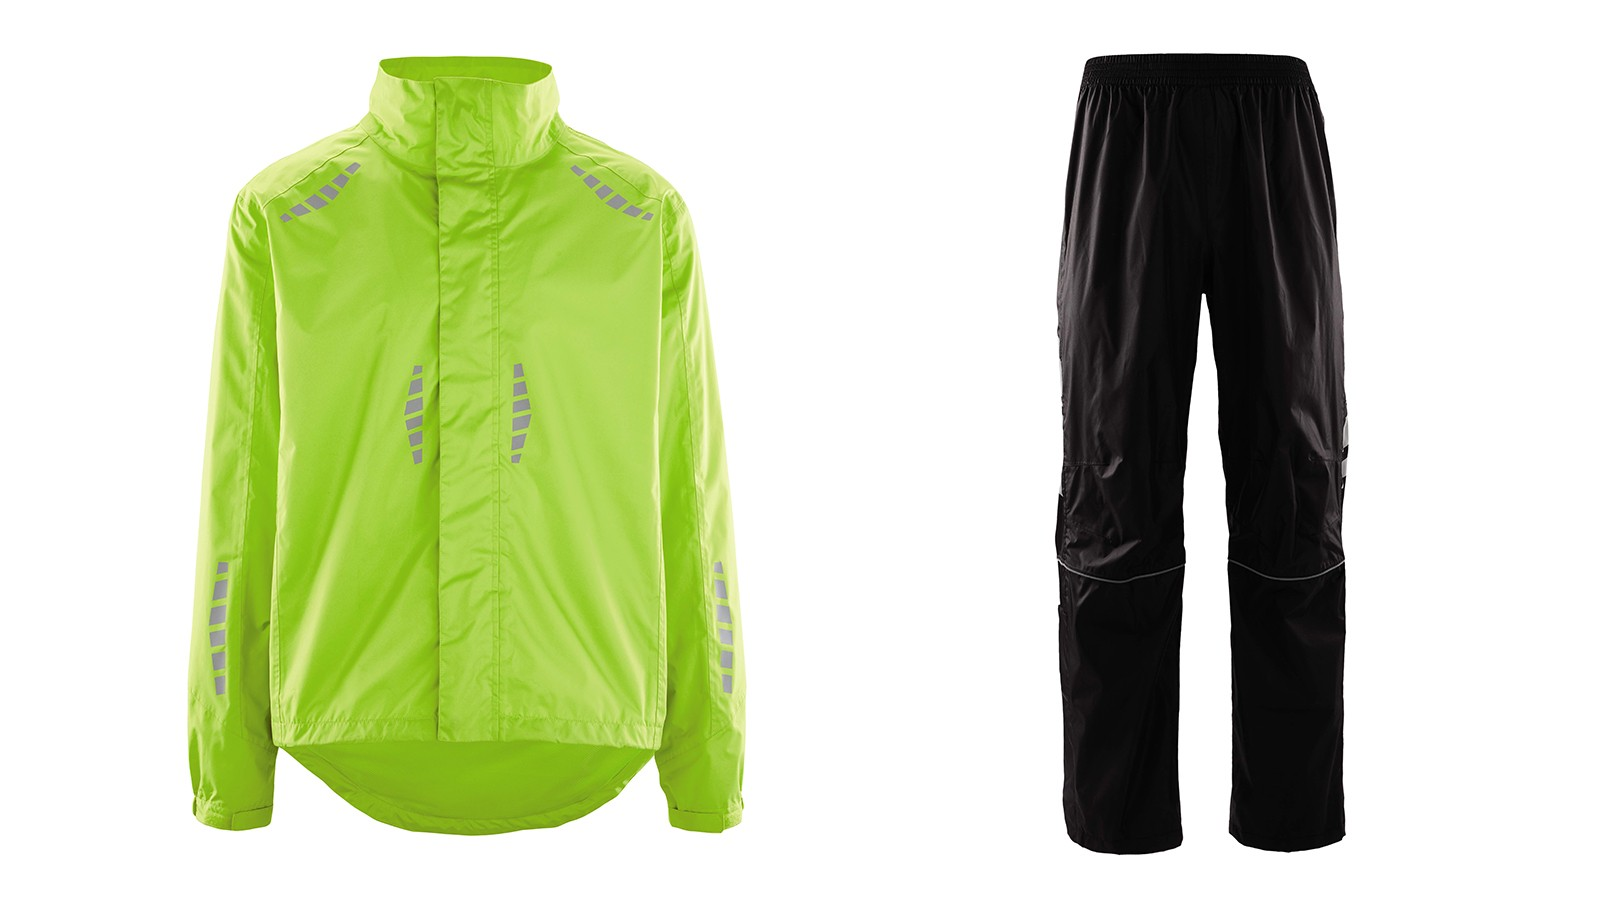 Get a £19.99 waterproof jacket or £14.99 overtrousers for the worst of the weather